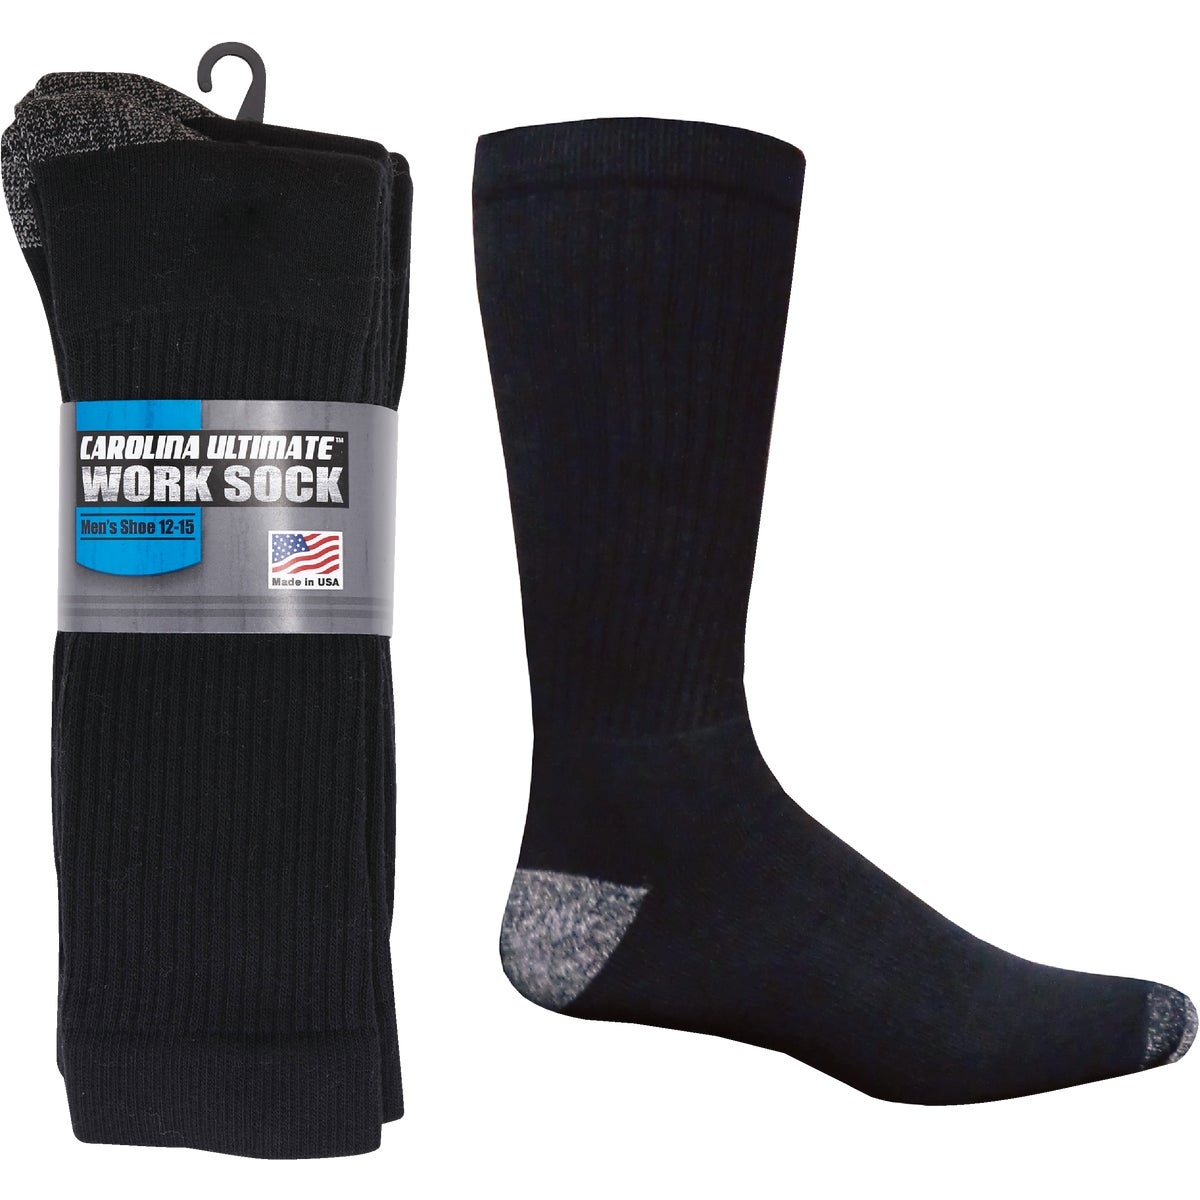 3PK BLK XL AT WORK SOCK - S1221-052XL by Wigwam Mills, Inc